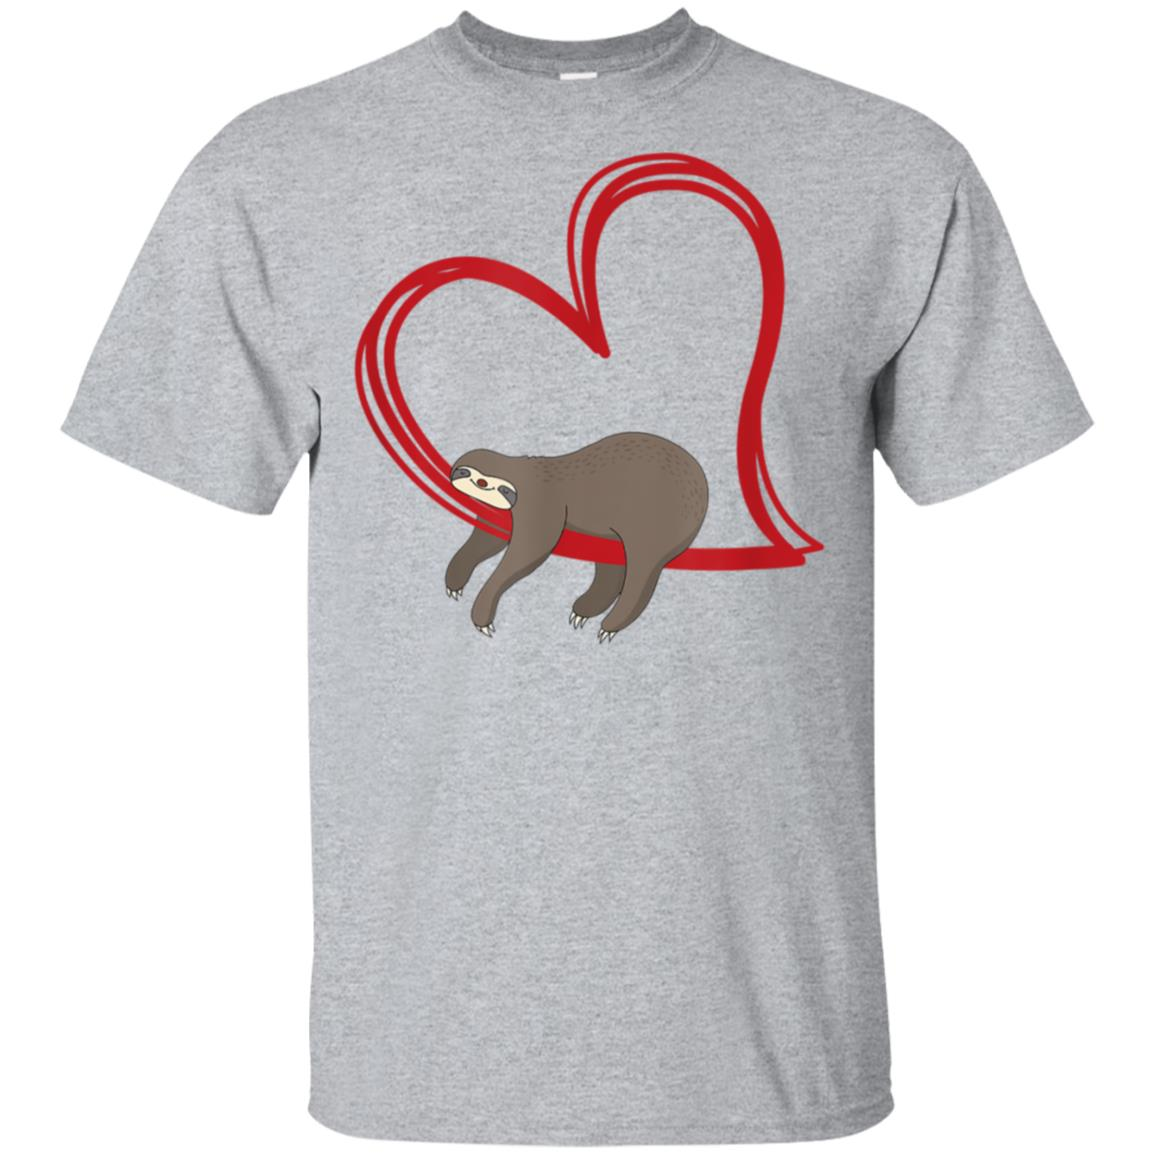 Sloth Valentines T Shirt Girls Women Sloths Valentine Gifts 99promocode